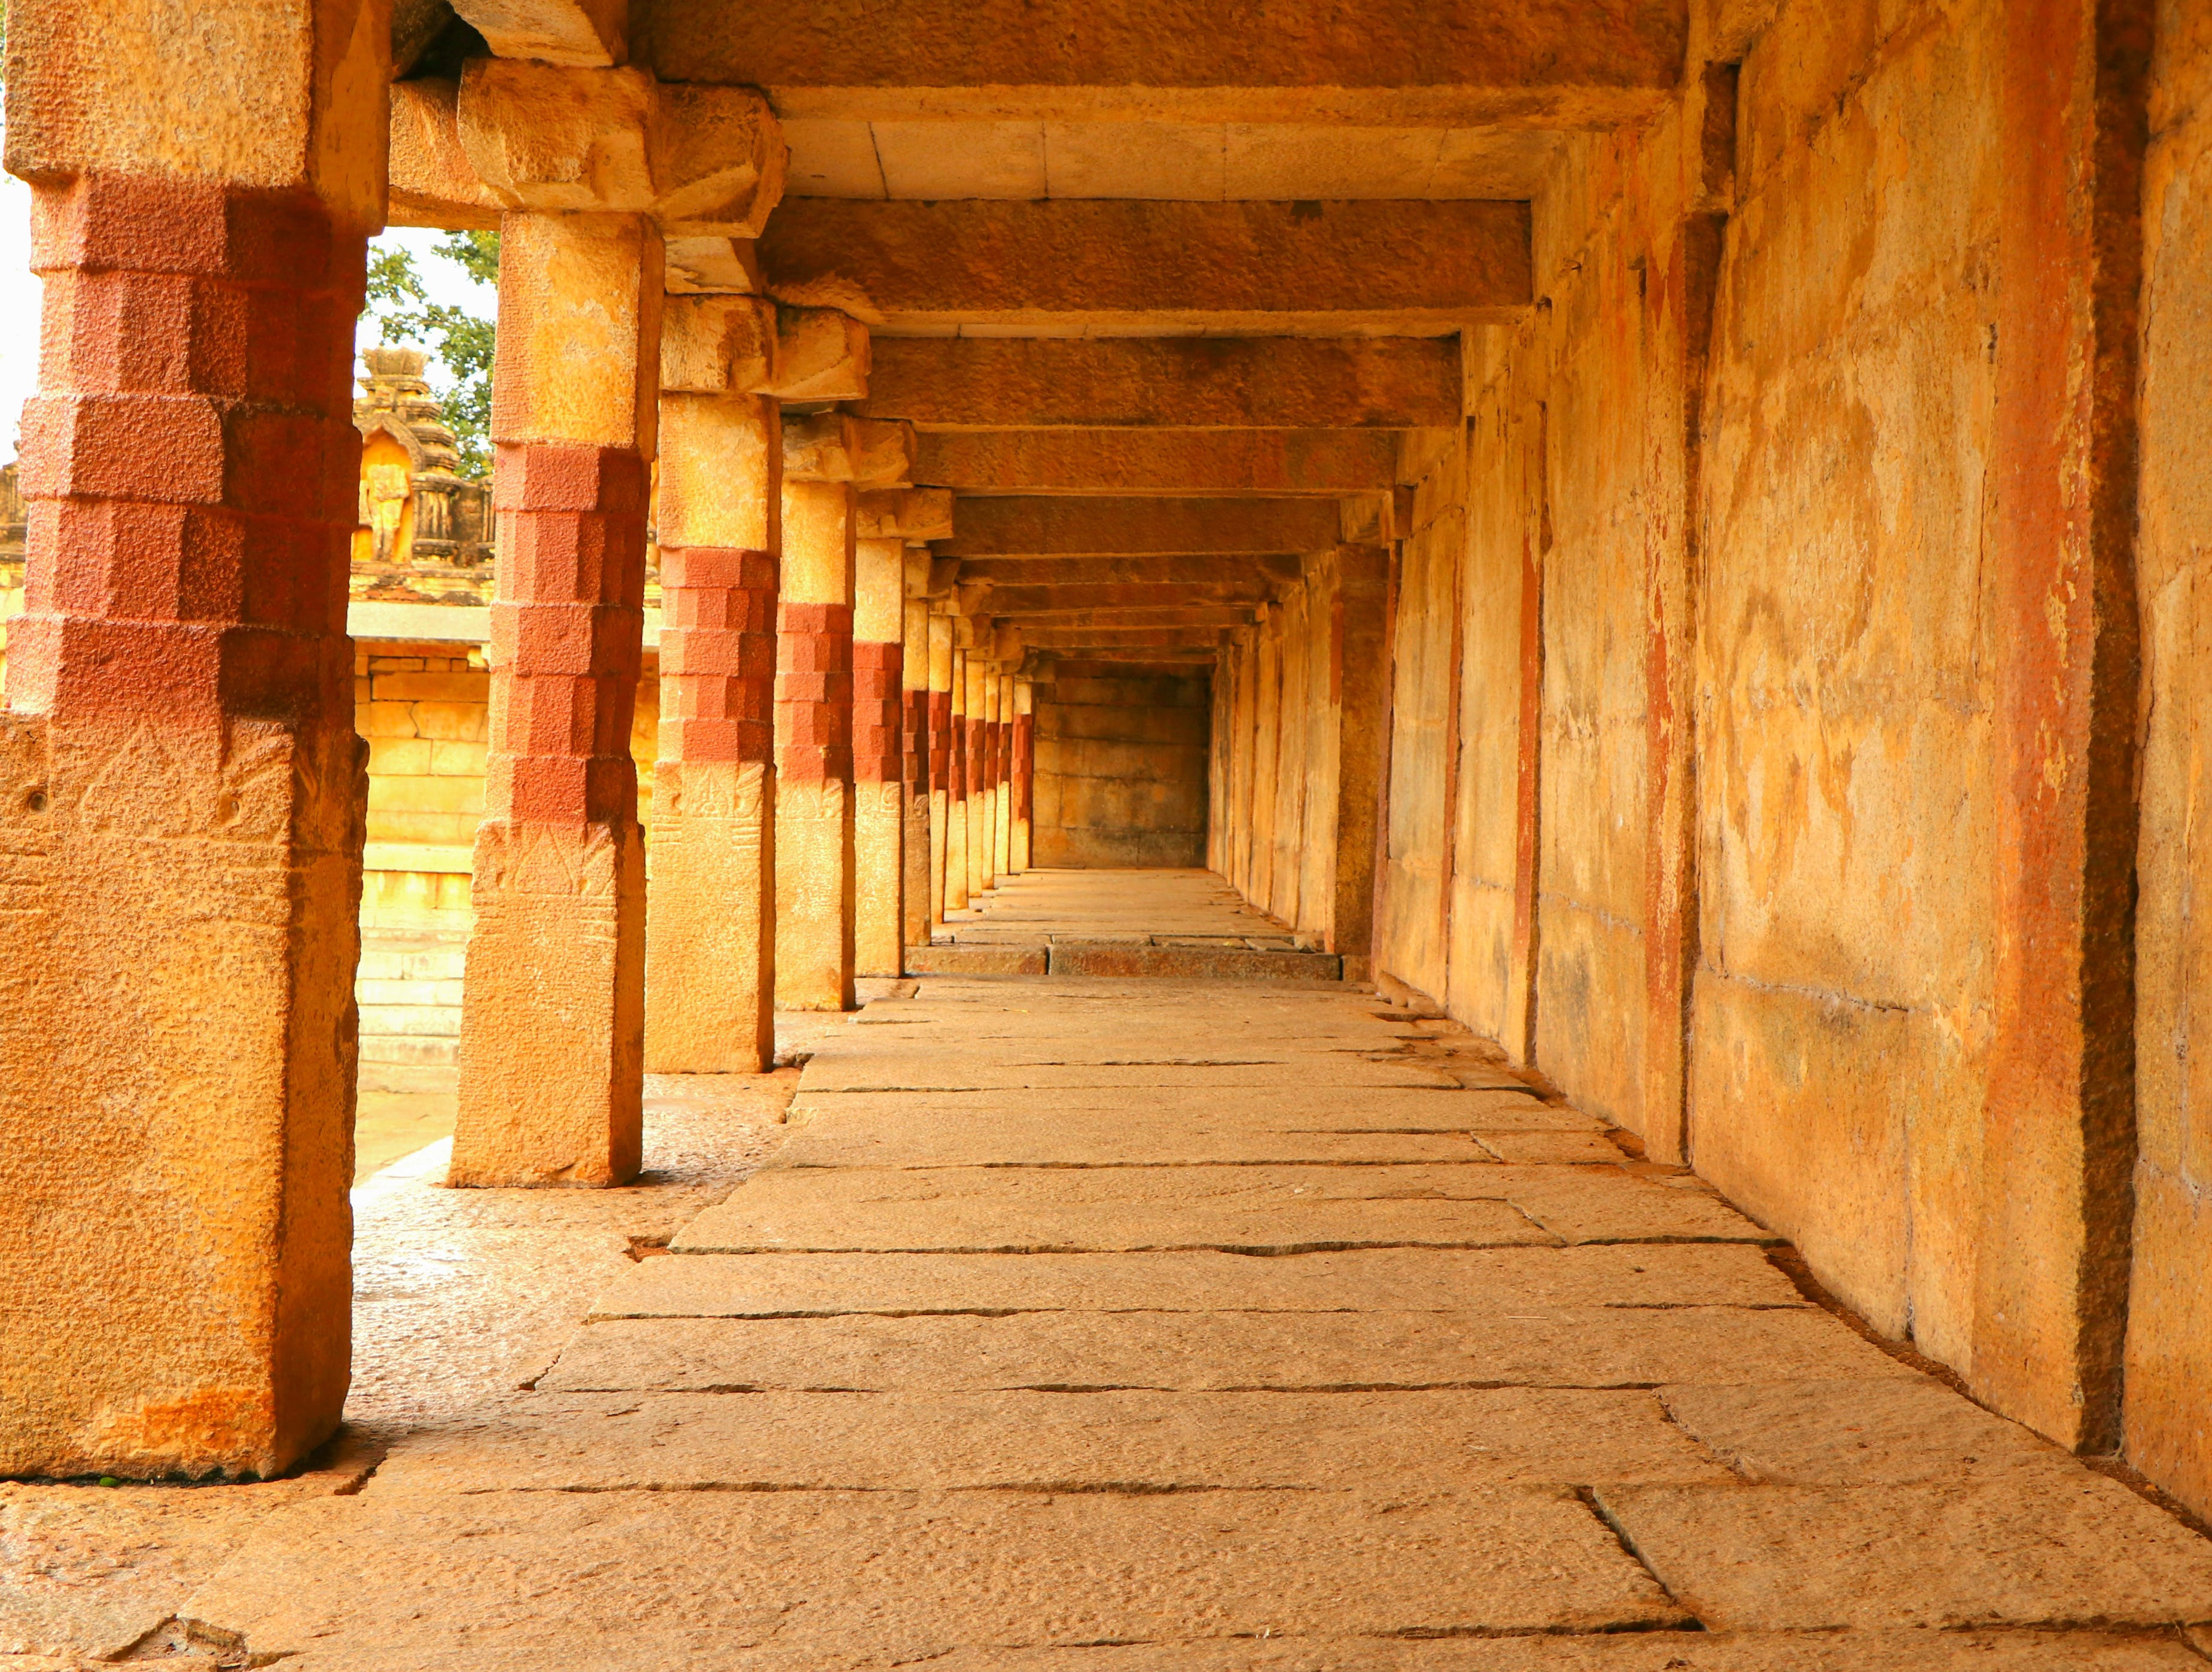 Free stock photo of #temple #ancient #structures #india #karnataka